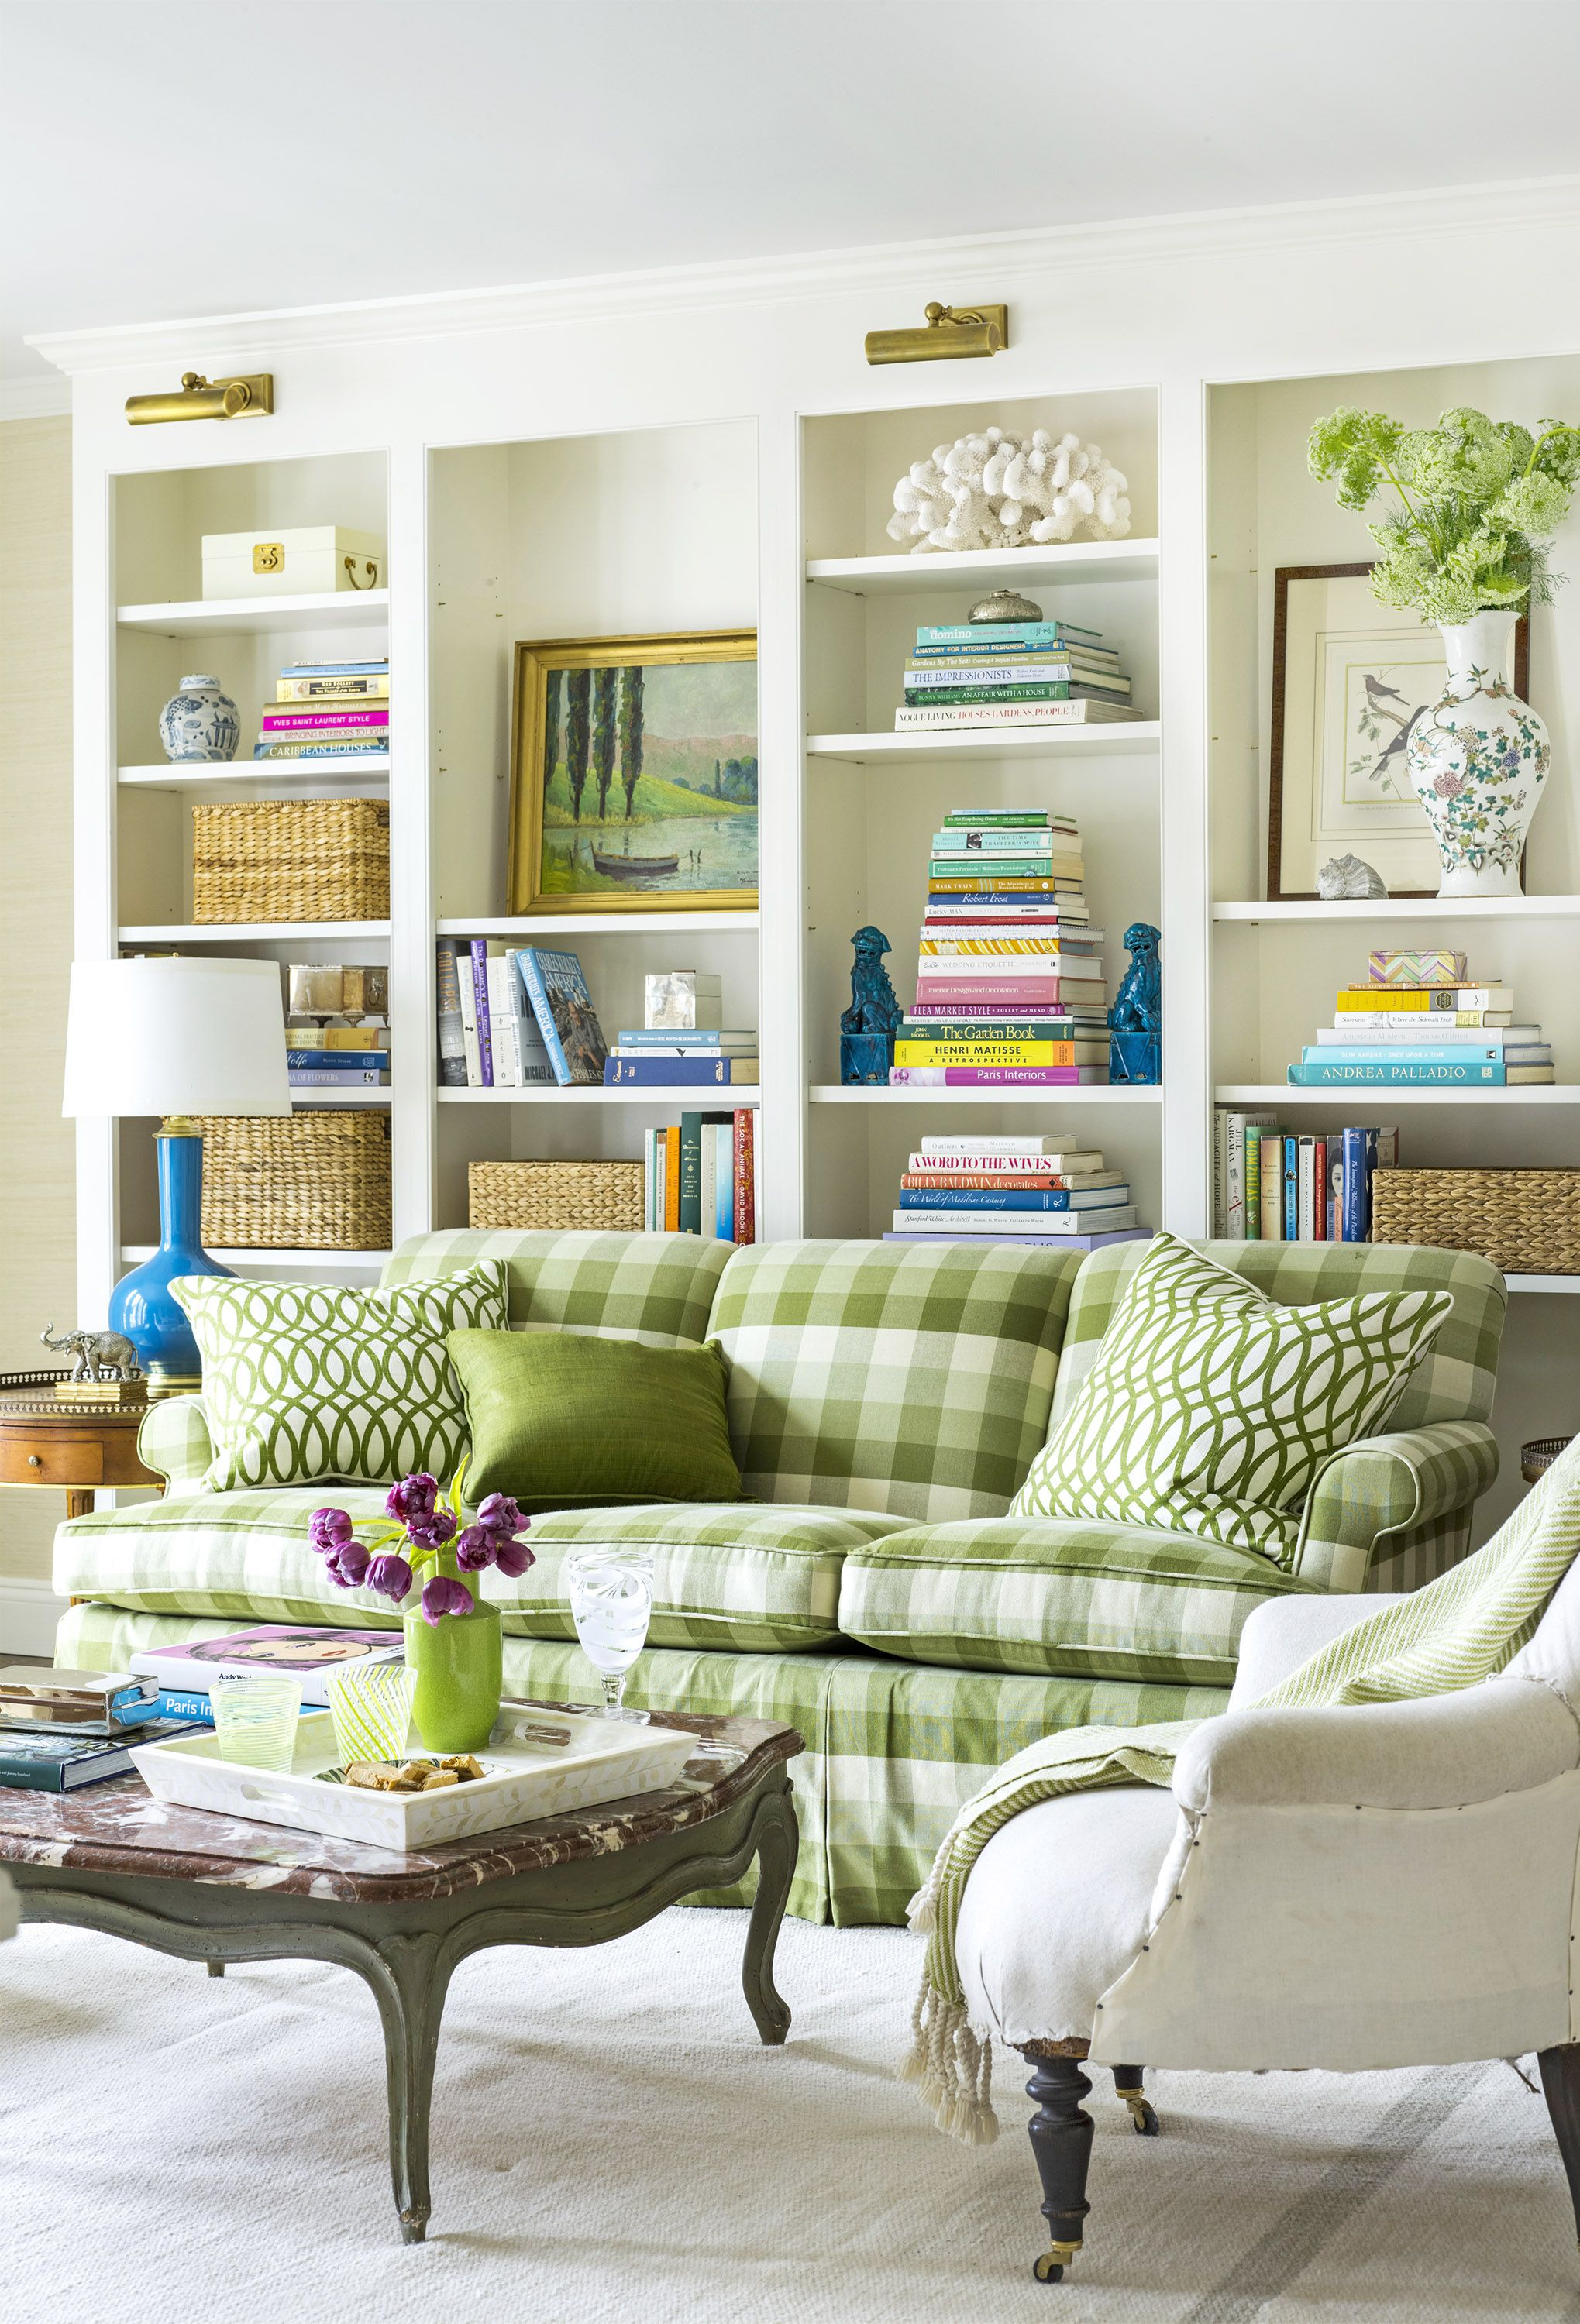 Green Living Decorating With Green 43 Ideas For Green Rooms And Home Decor